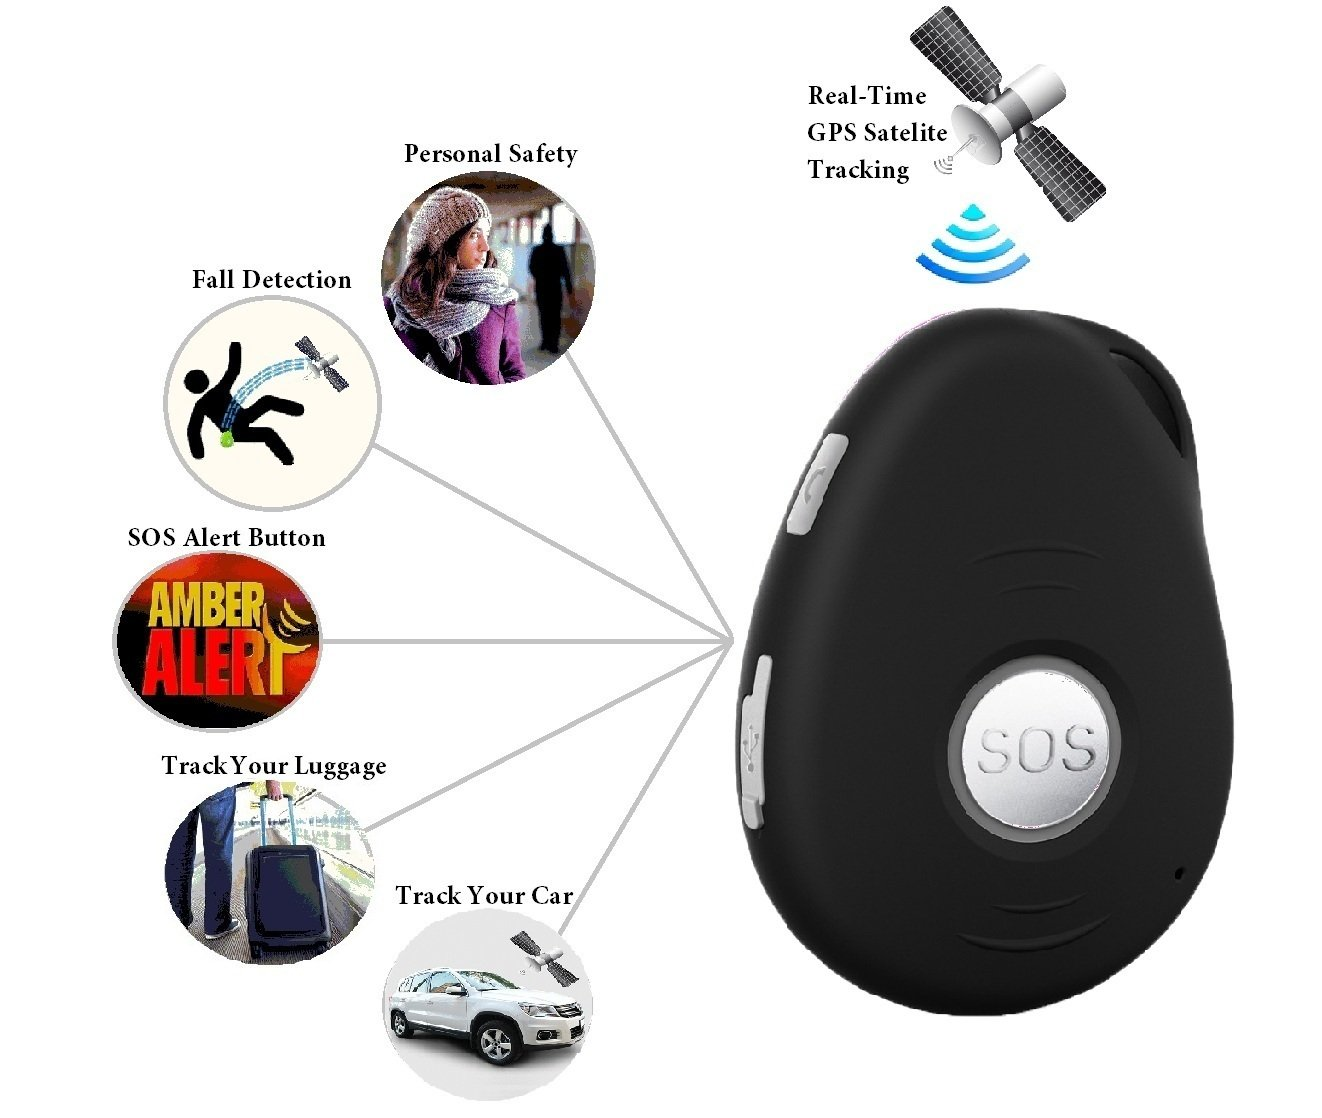 3G VisionOne GPS Tracker / Personal Alarm & Charging Dock Bundle -SOS Alarm, 2-way Talk, Fall Detection, Spy Mode, Geo-fence, Speed Alert, Real-time GPS Tracking Device, Kids, Elderly, Personal, Drone by VisionOneGPS (Image #3)